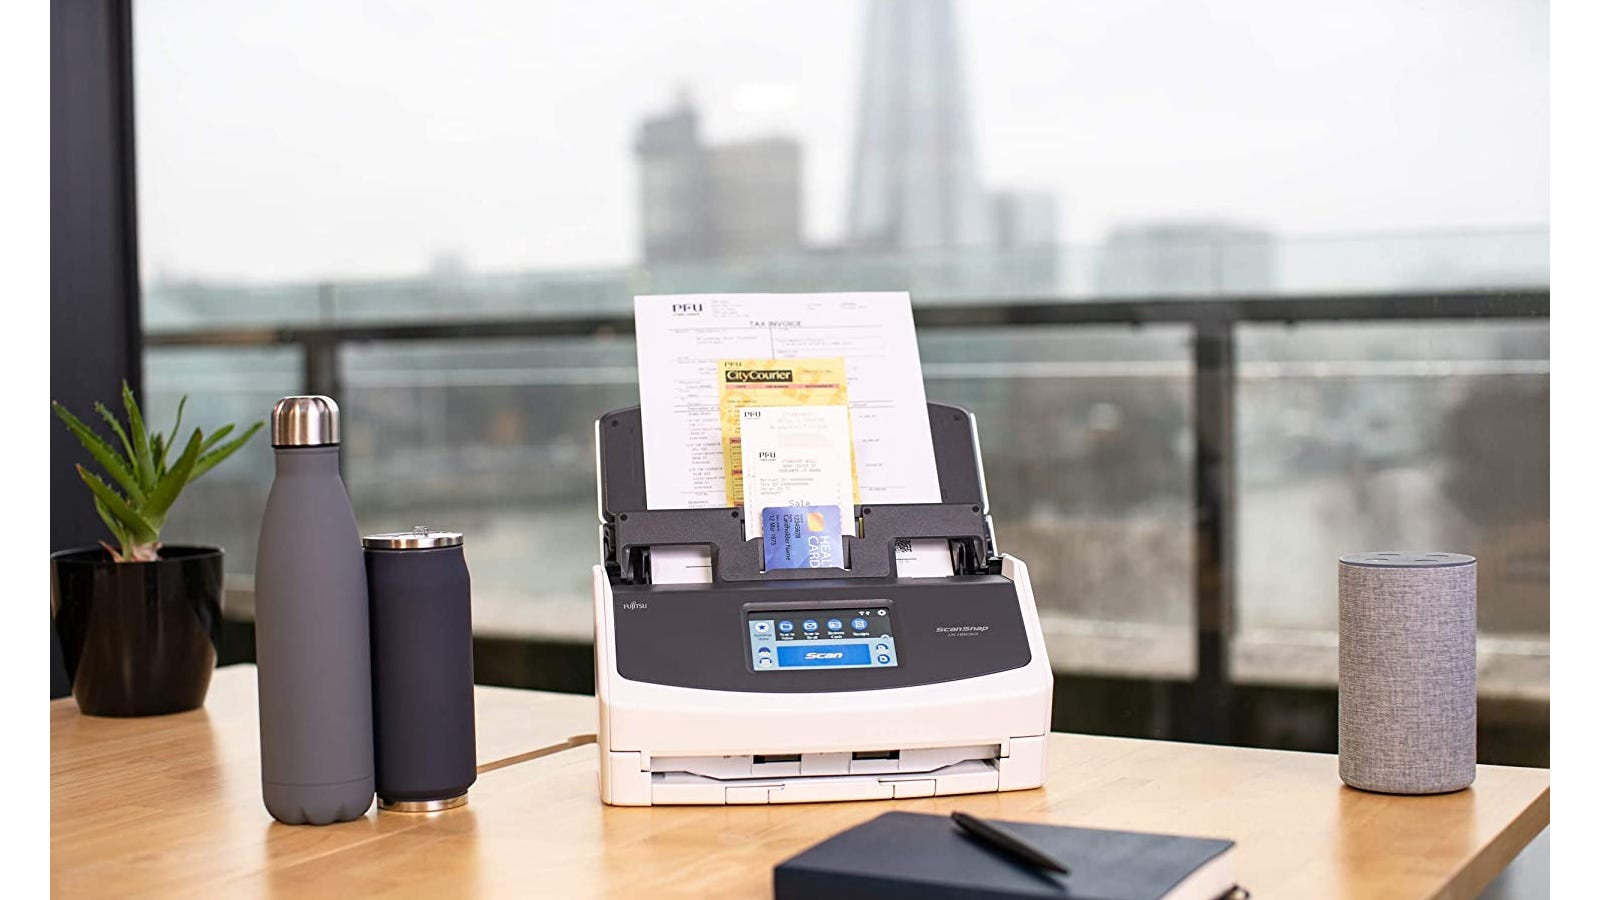 A white and black document scanner sitting on a wooden desk next to a notebook and water bottles.